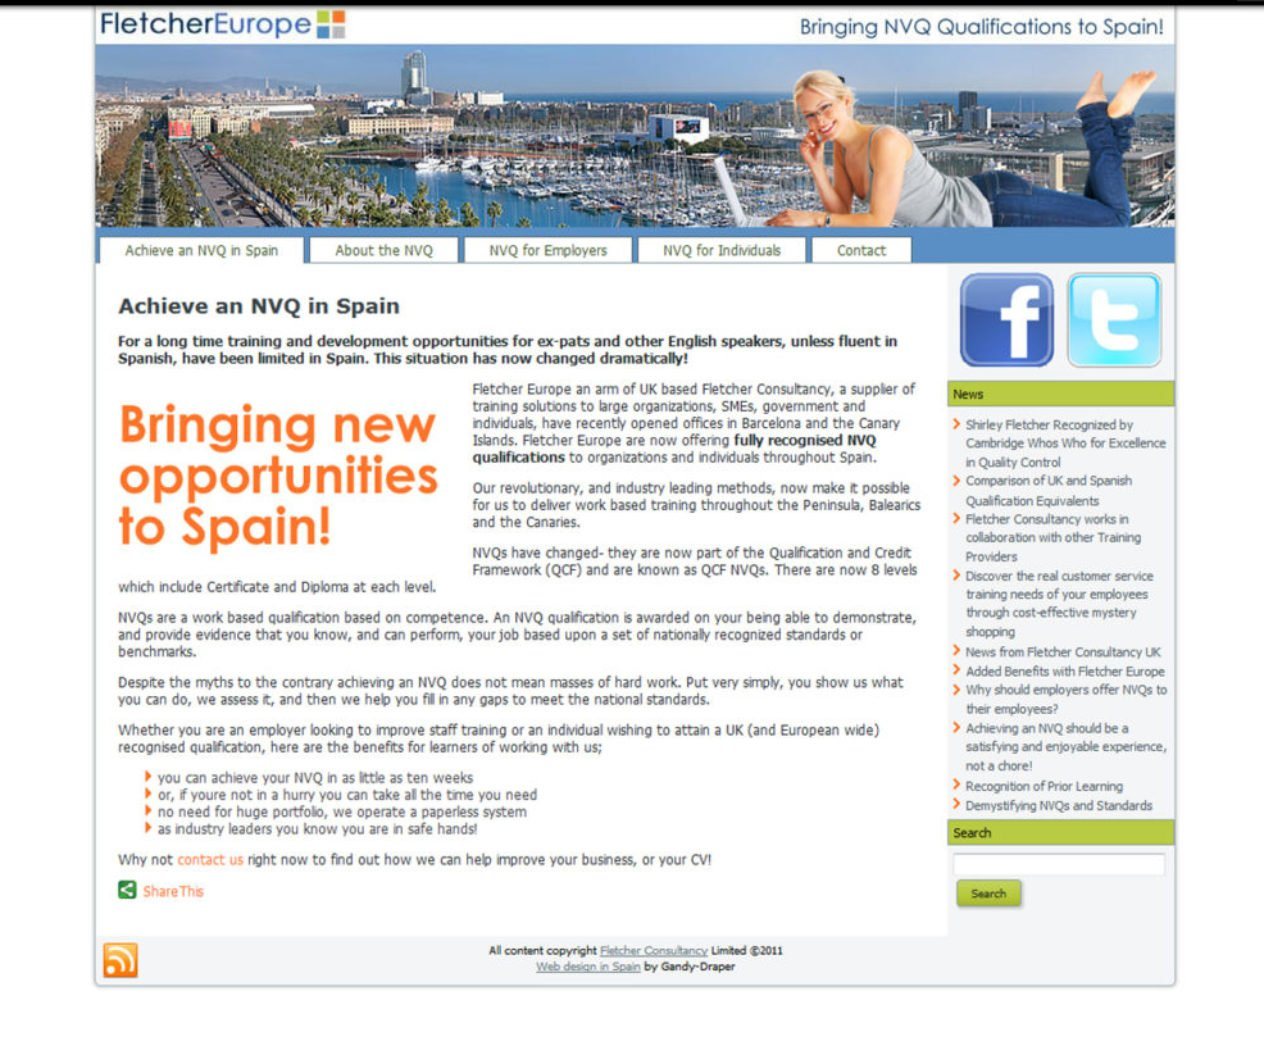 NVQ in Spain